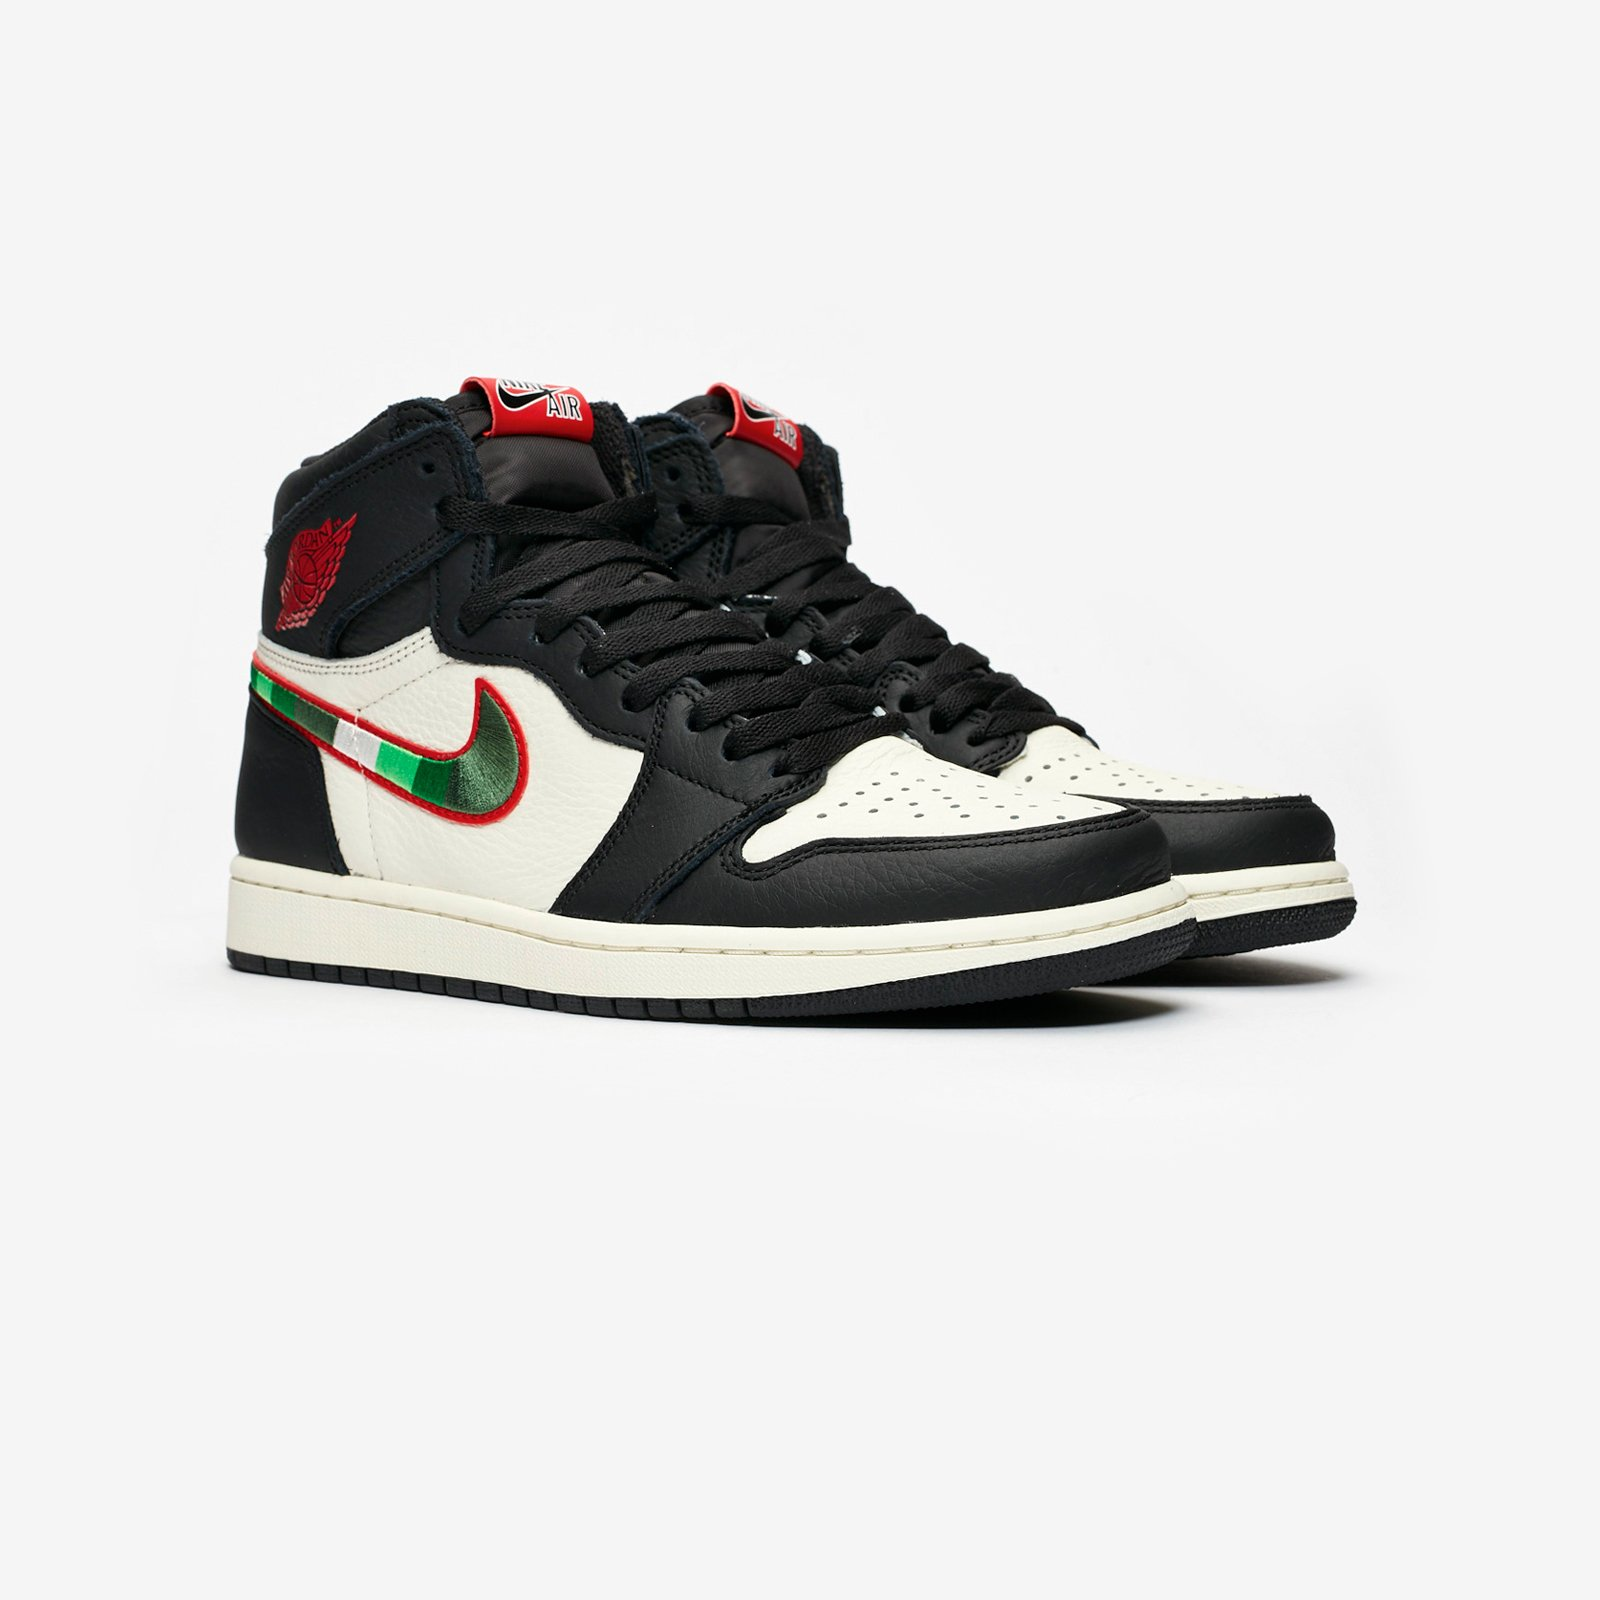 best loved ba26c 44c3d Jordan Brand Air Jordan 1 High Retro